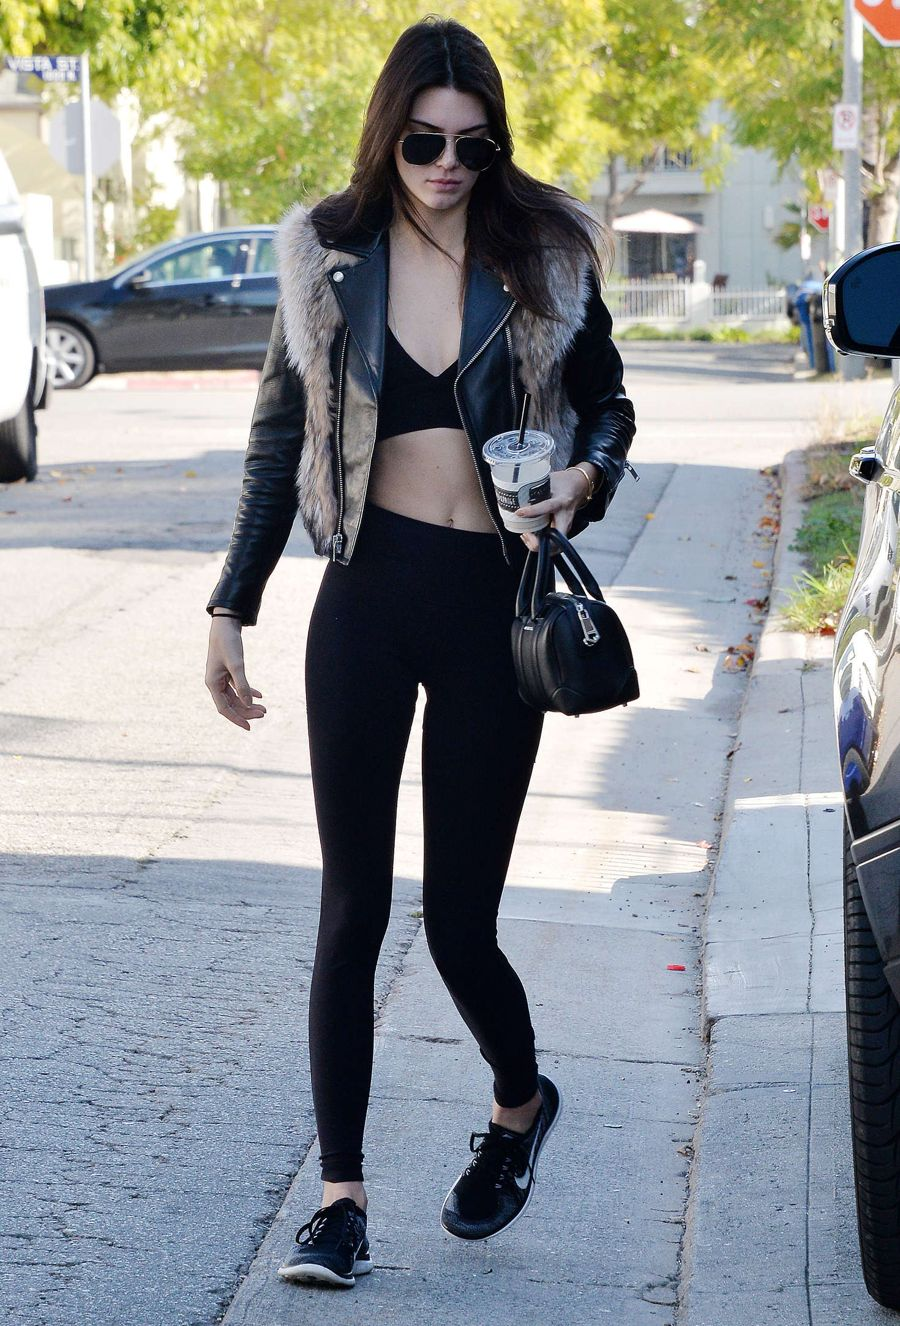 Kendall Jenner - Business in Front, Party in Back